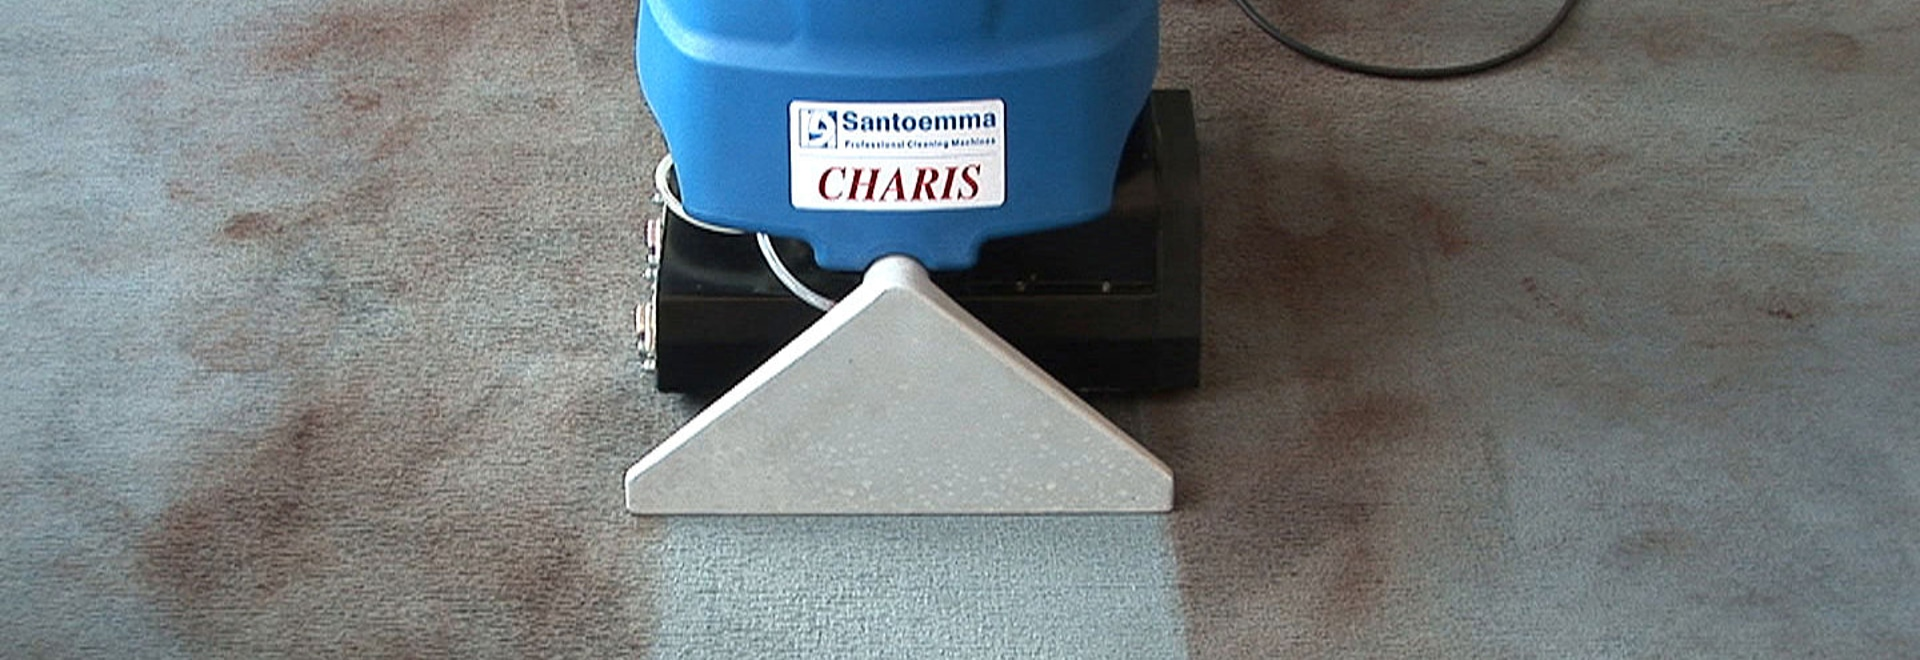 The new professional carpet cleaning system from santoemma the new professional carpet cleaning system from santoemmaexcellent cleaning results in an sciox Gallery